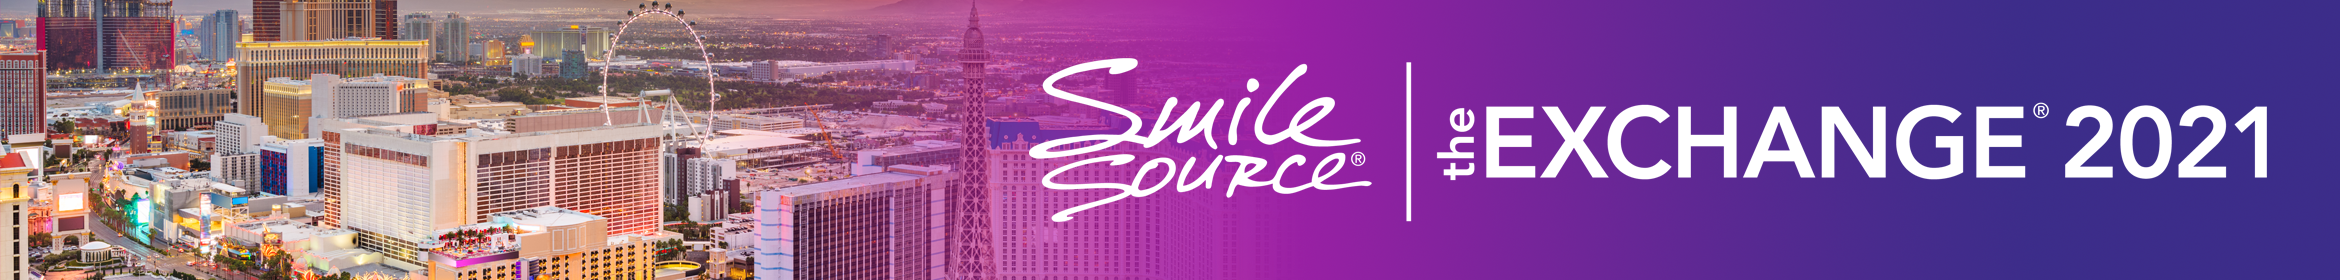 2021 SMILE SOURCE EXCHANGE Main banner